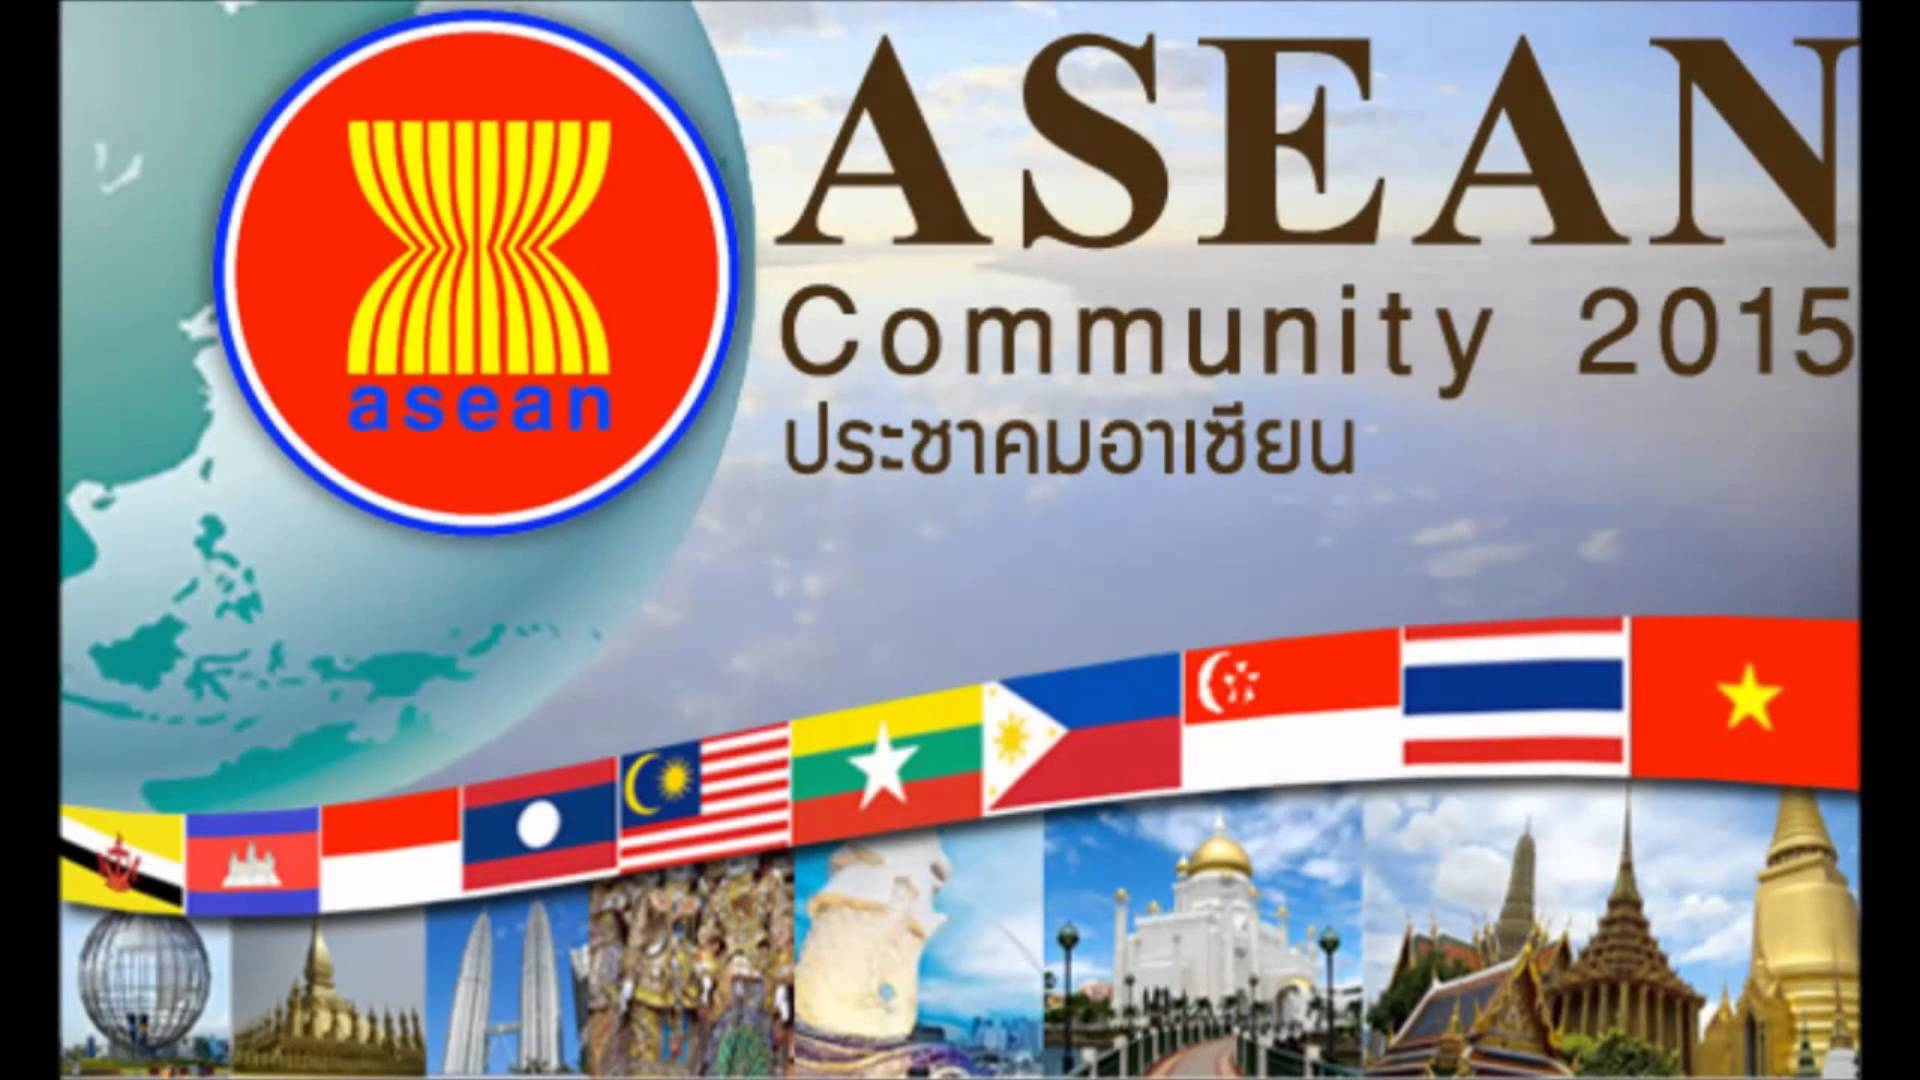 what is the goal of asean